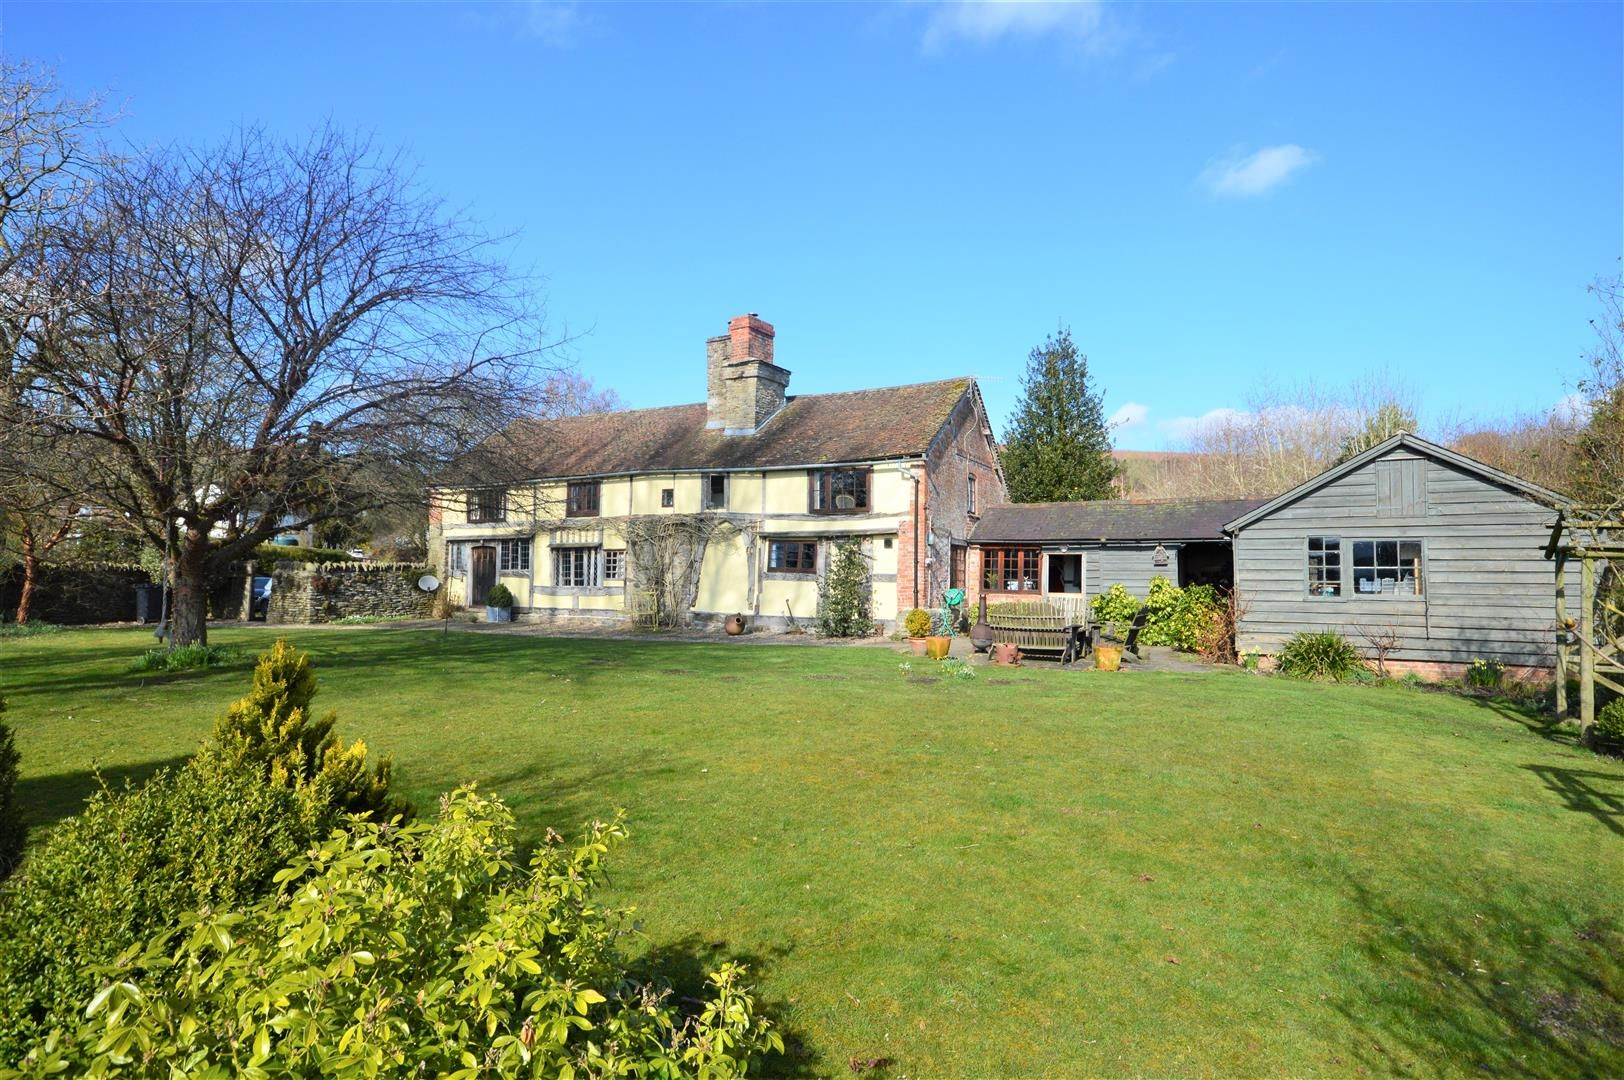 3 bed country-house for sale in Stapleton, LD8